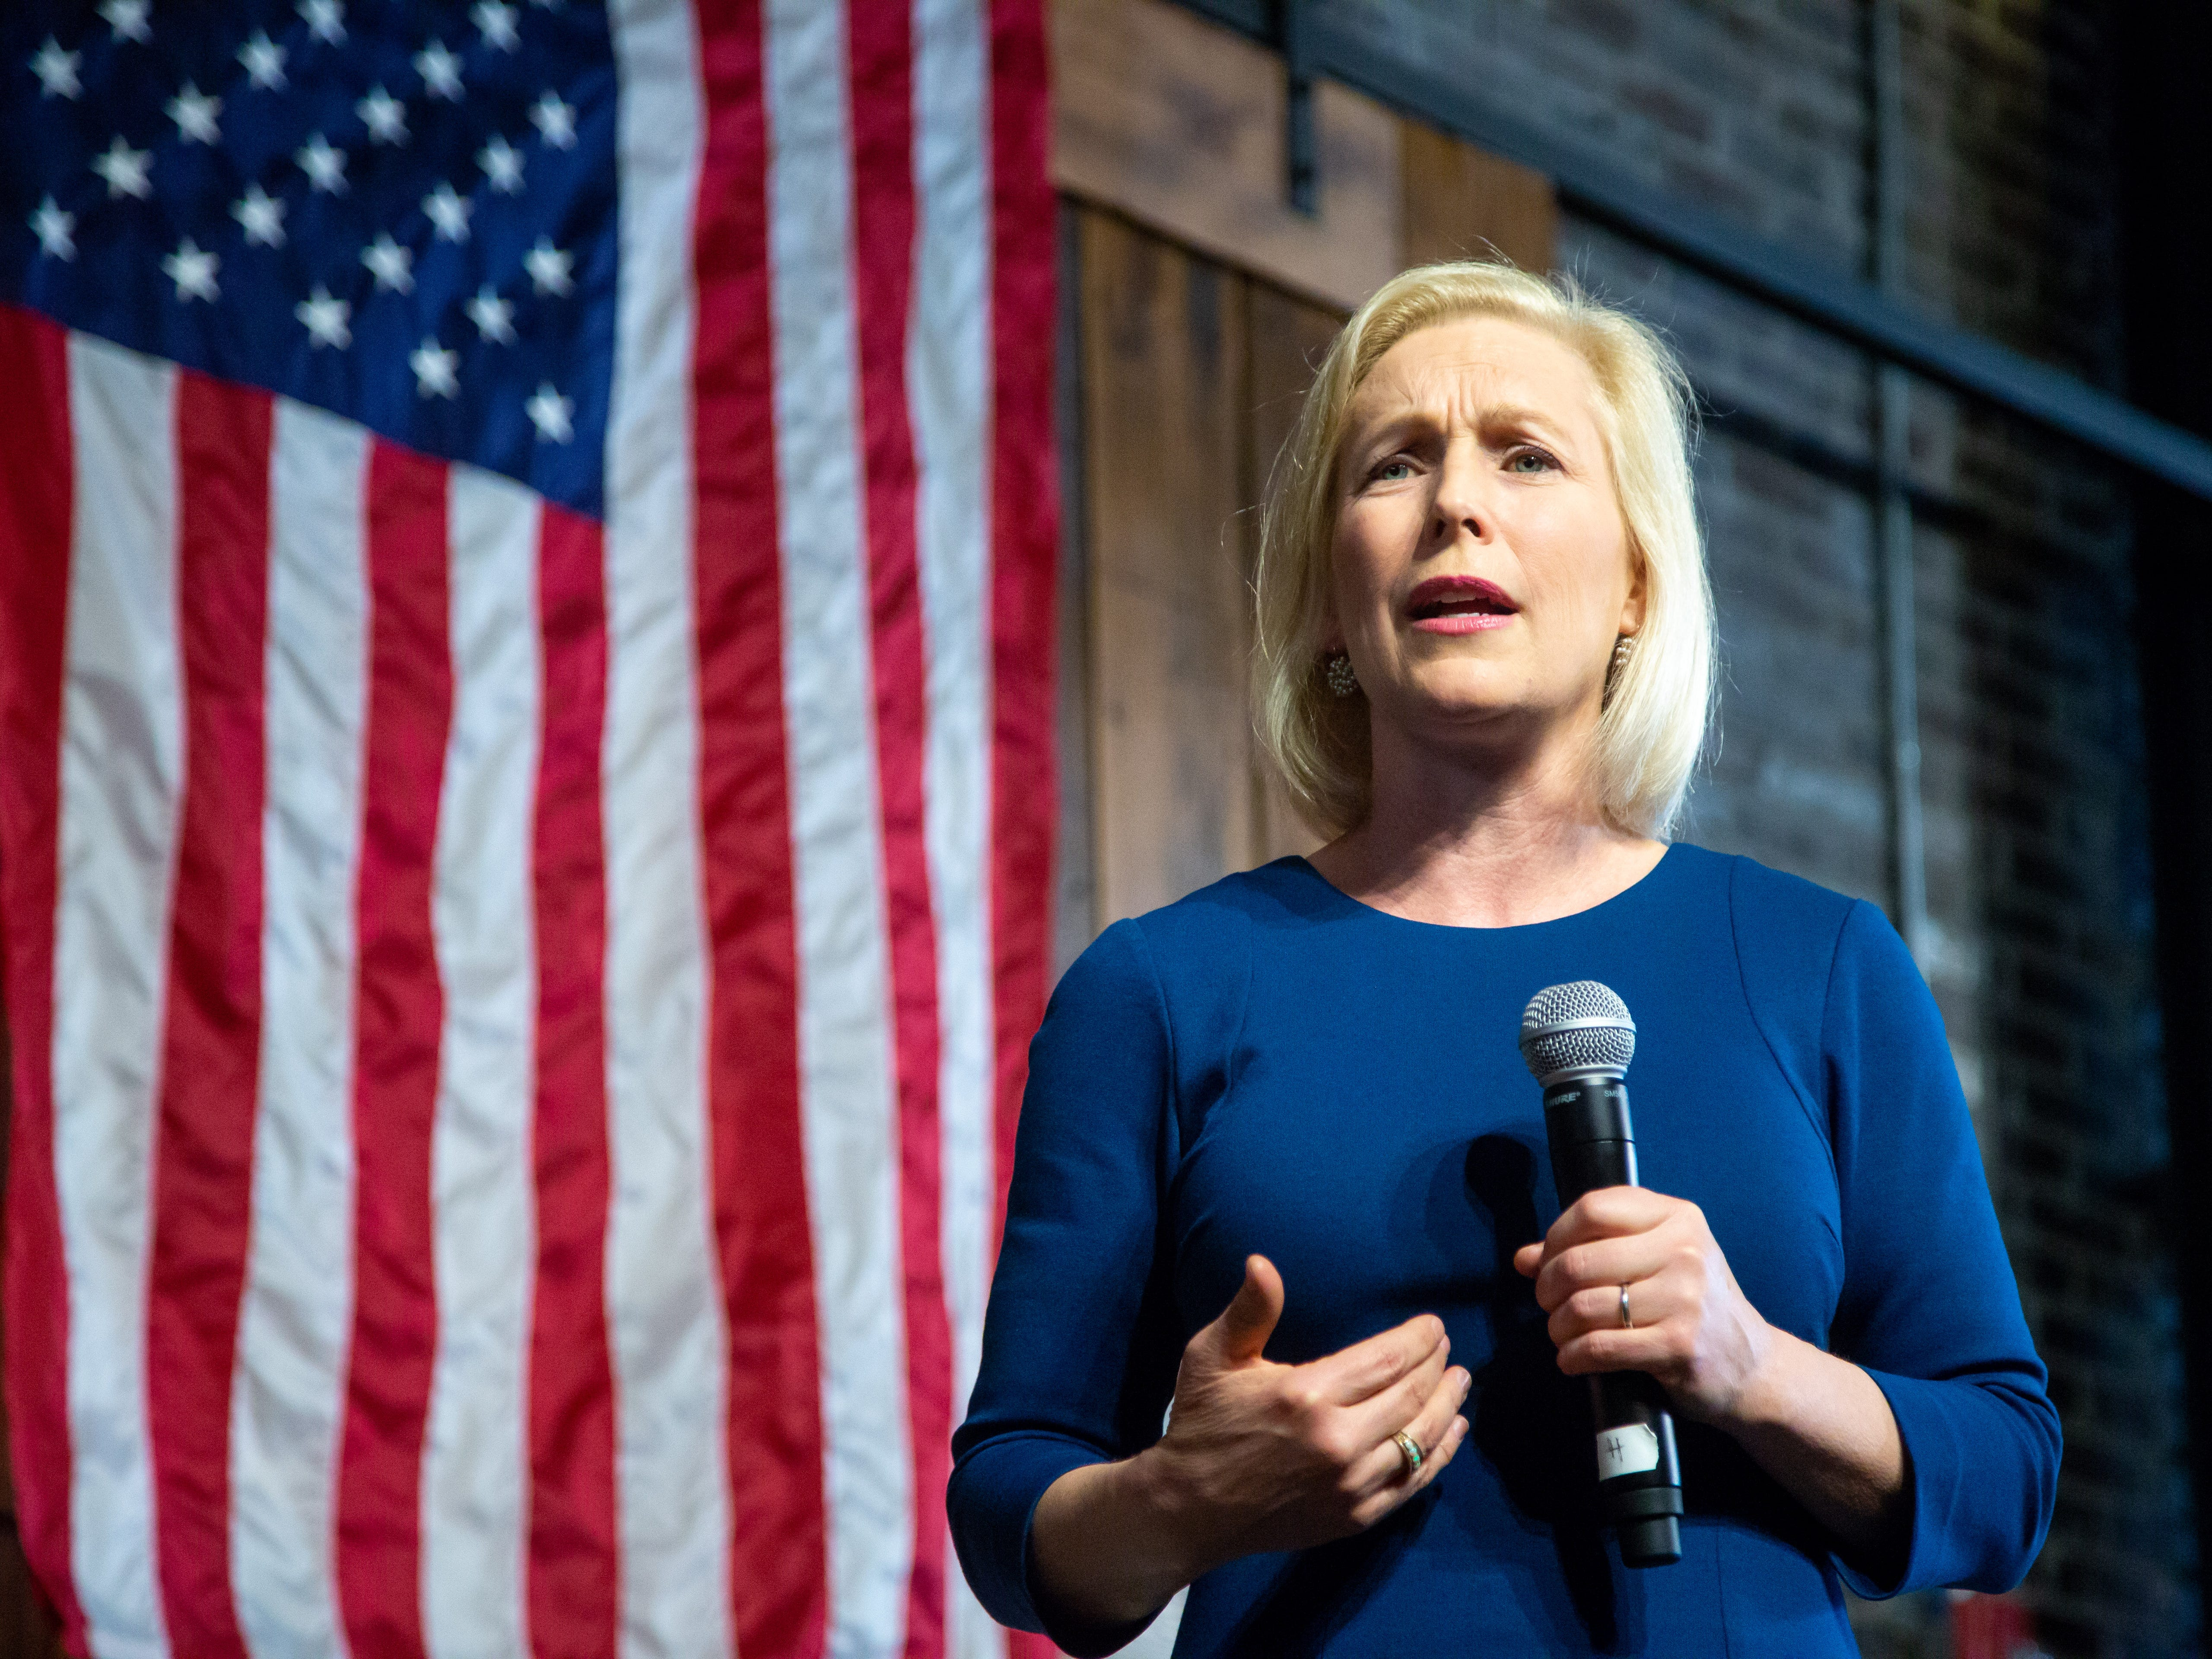 Sen. Kirsten Gillibrand links flooding to climate change, 'the greatest threat to humanity'